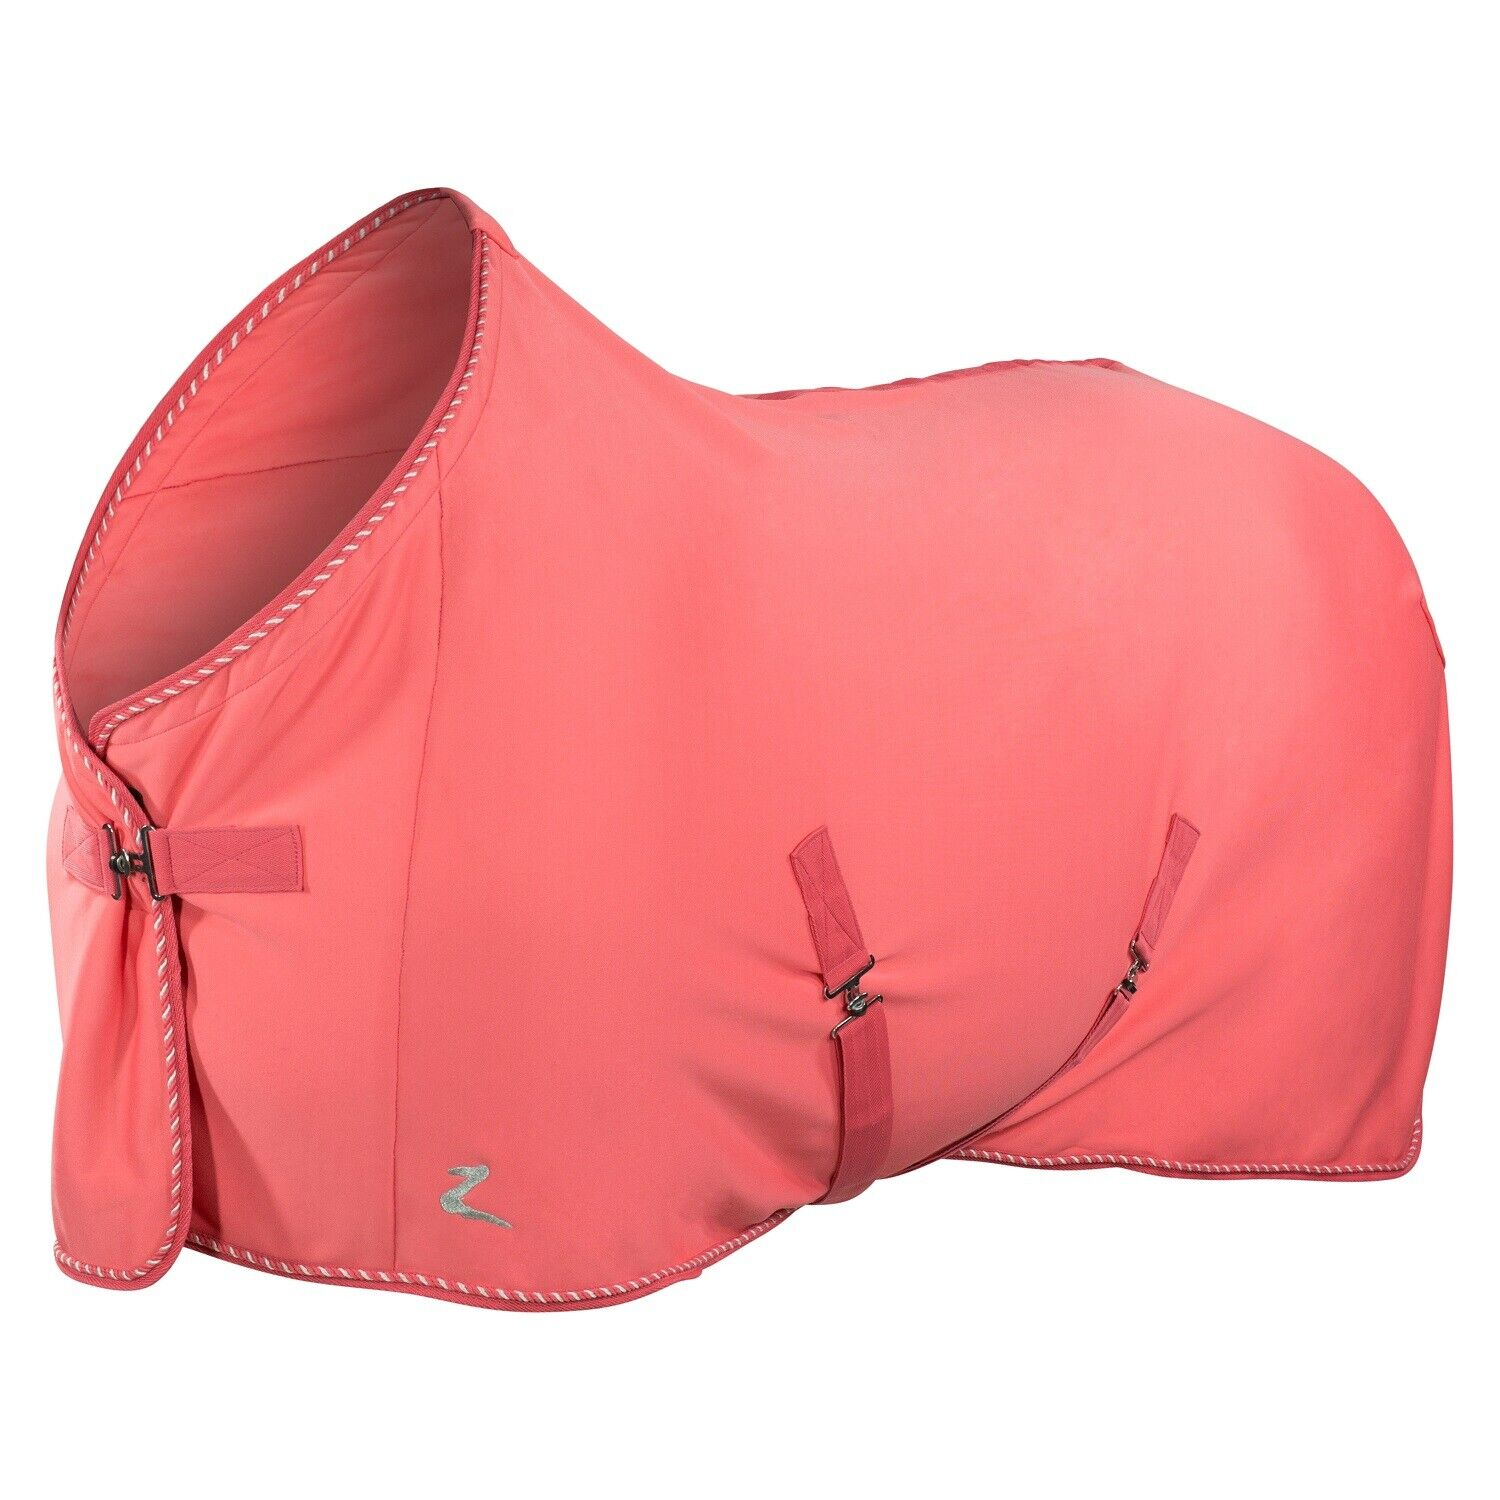 Horze PINK  75  Travel Show Bath Fleece Lined Polyester Adjustable Cooler Blanket  free delivery and returns